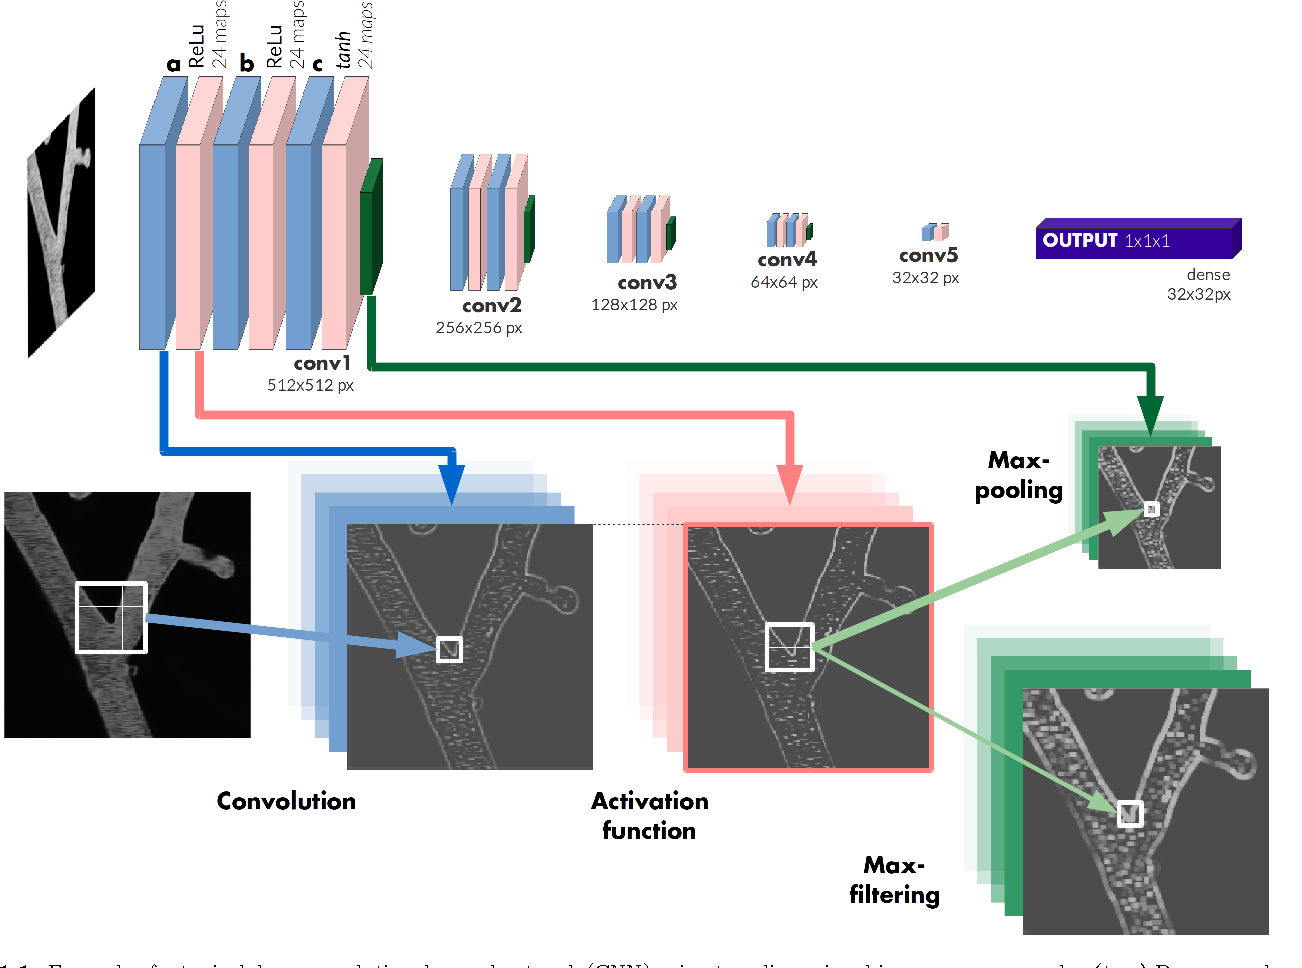 Figure 1 1 from Deep Learning Convolutional Networks for